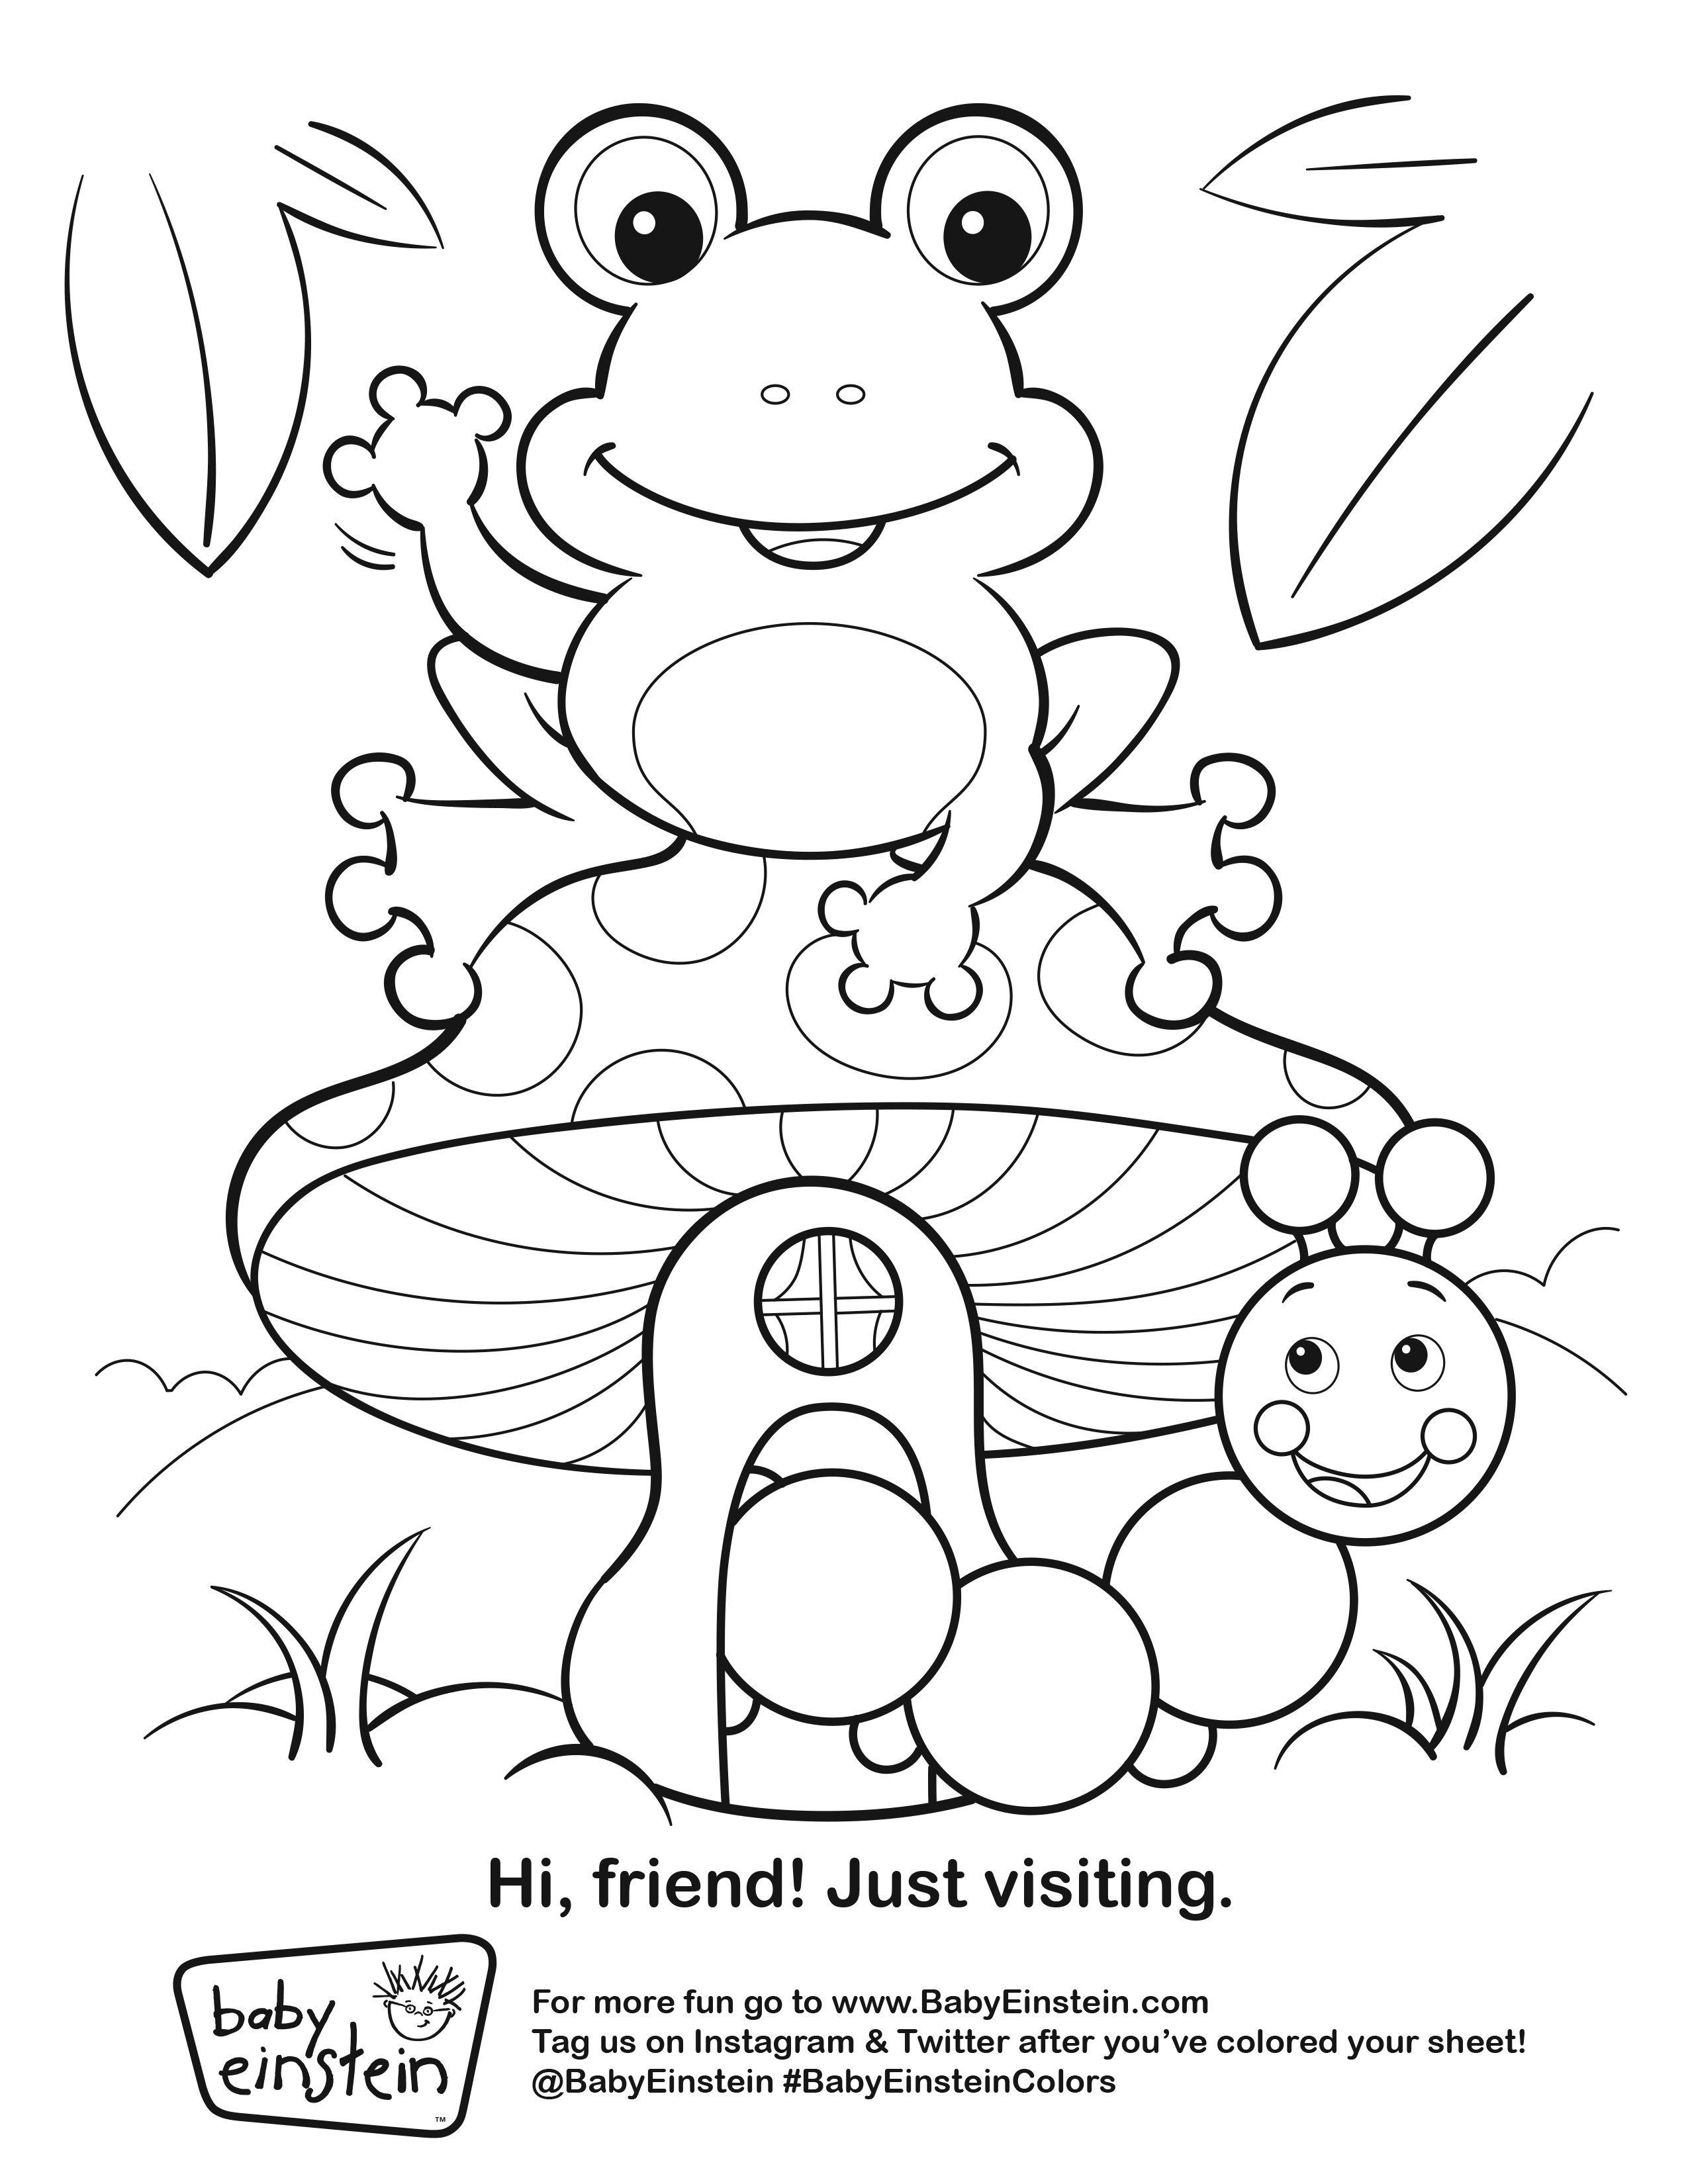 Baby Einstein Coloring Pages At Getcolorings